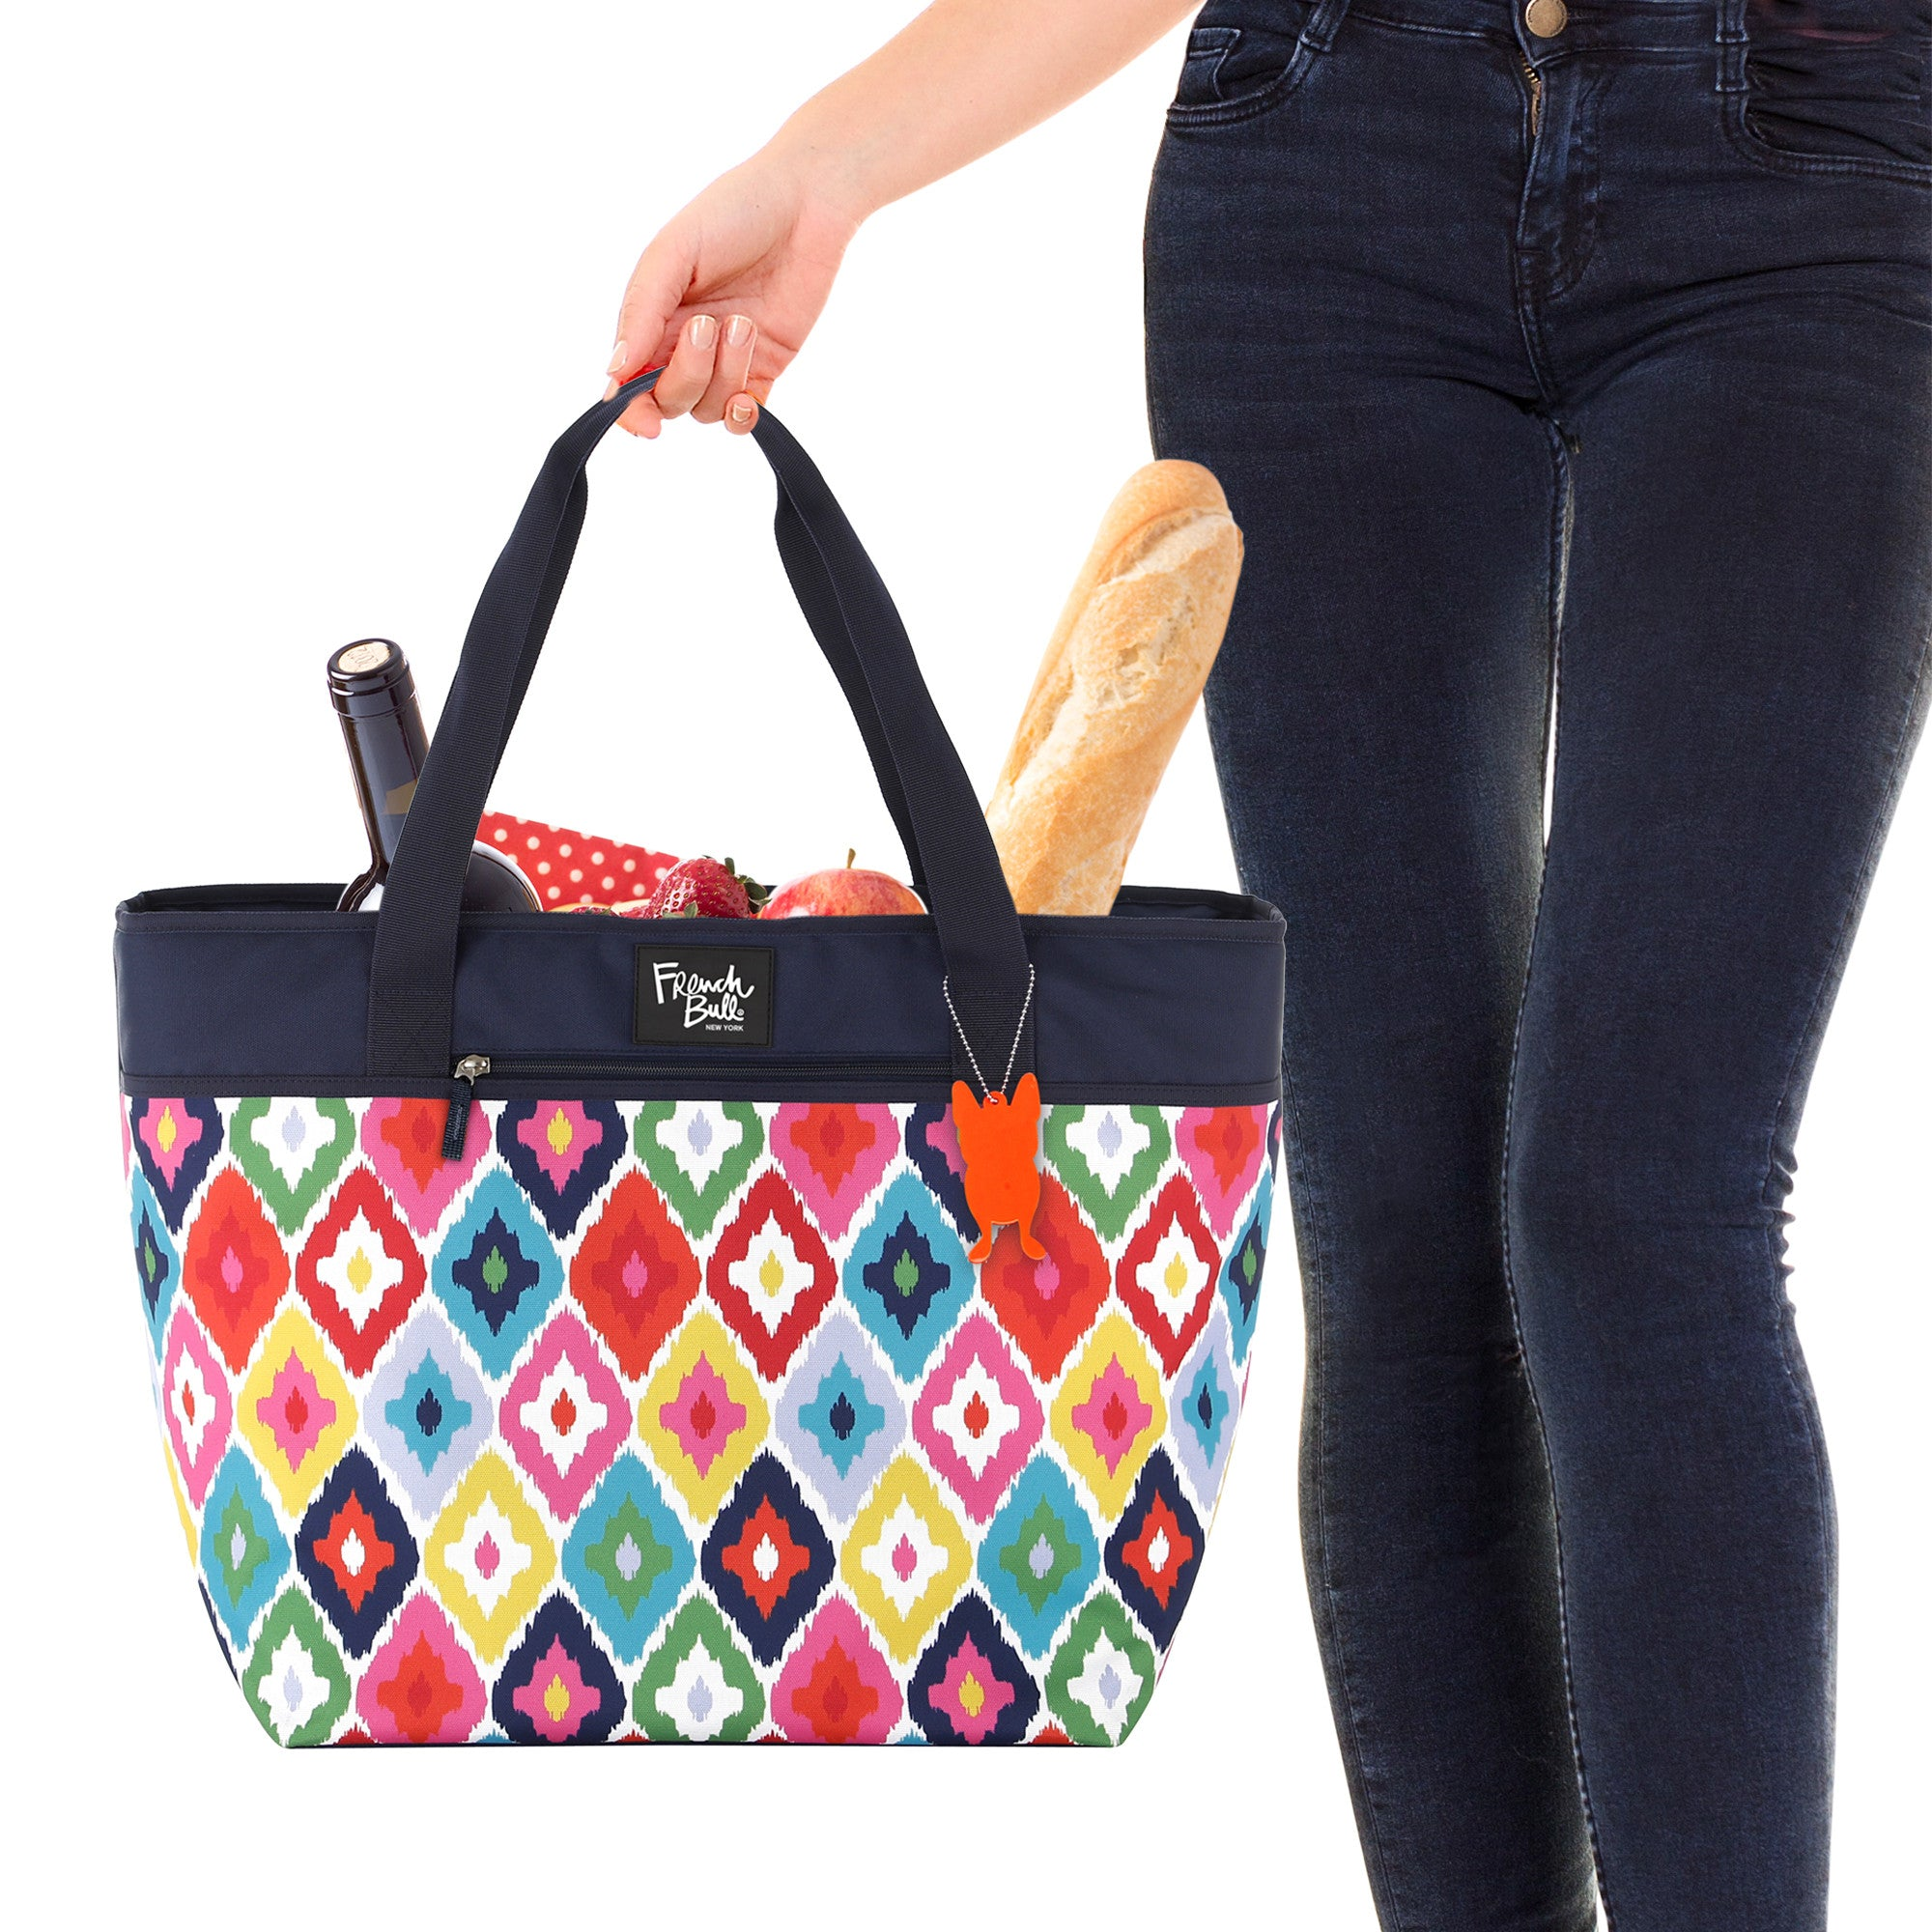 806c7f2f3e Kat Insulated Picnic Tote Bag - French Bull